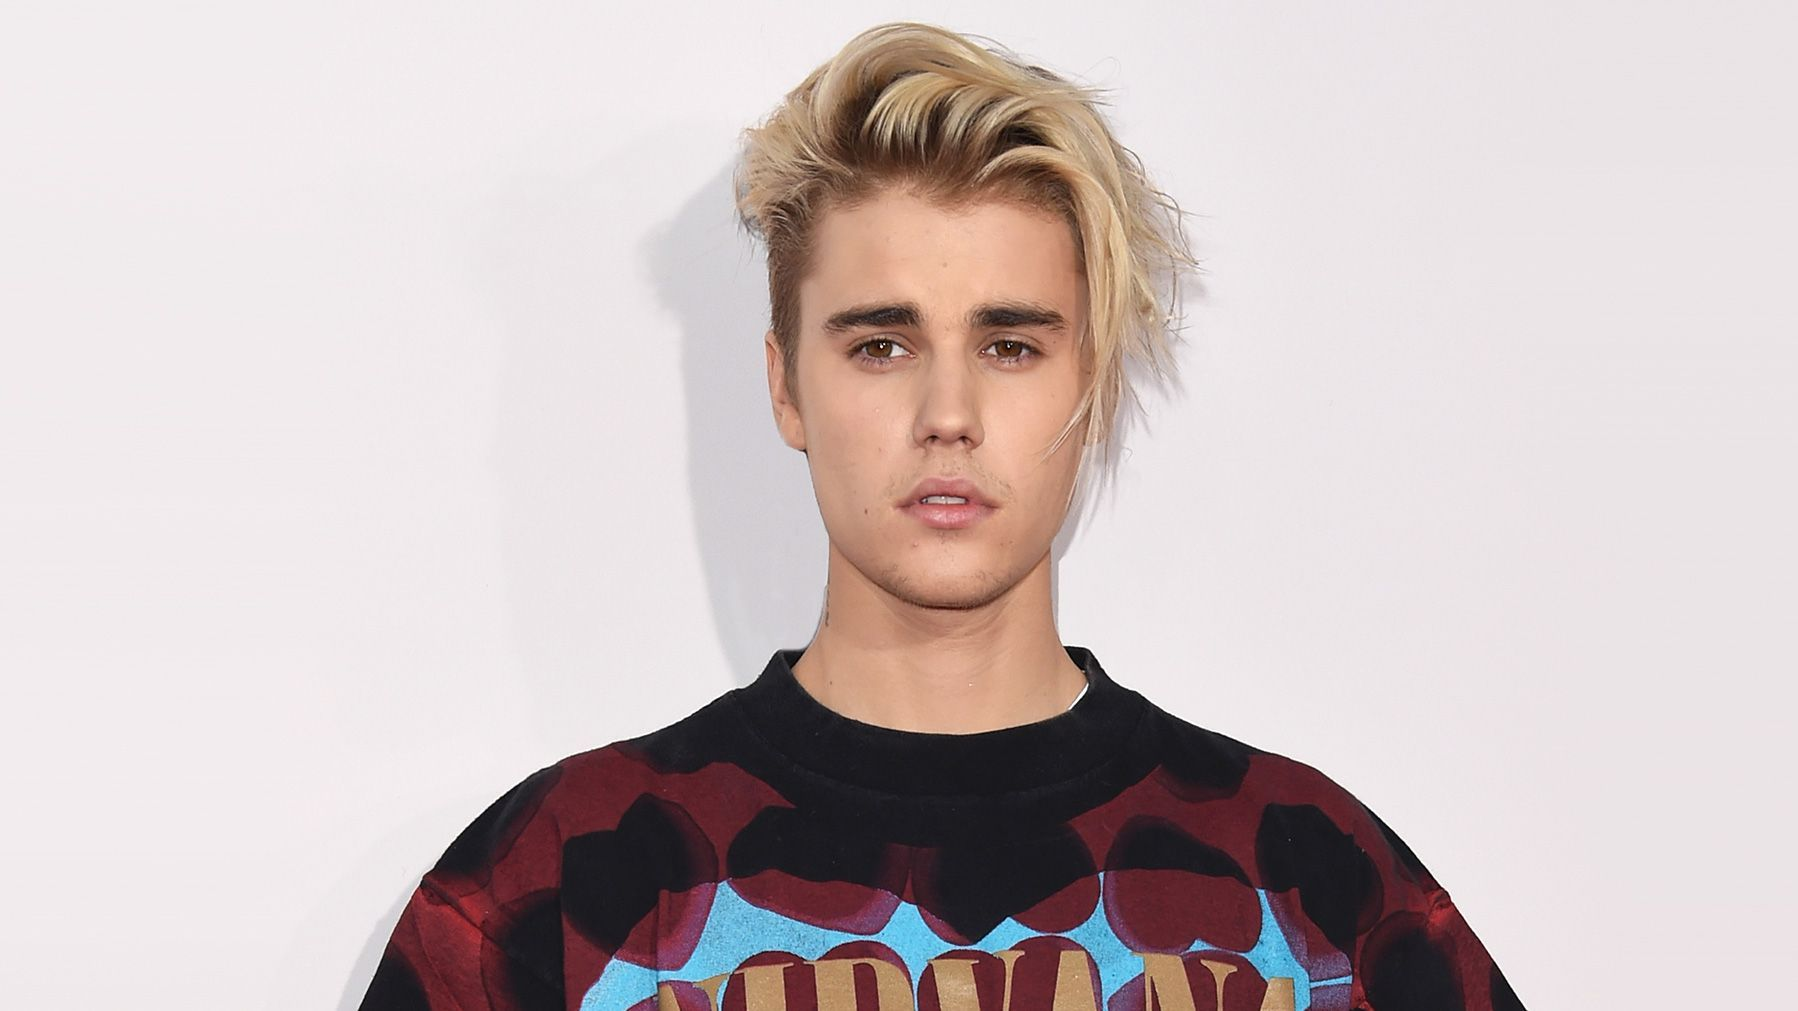 Justin Bieber Proves He Needs A Haircut With One Photo Mtv